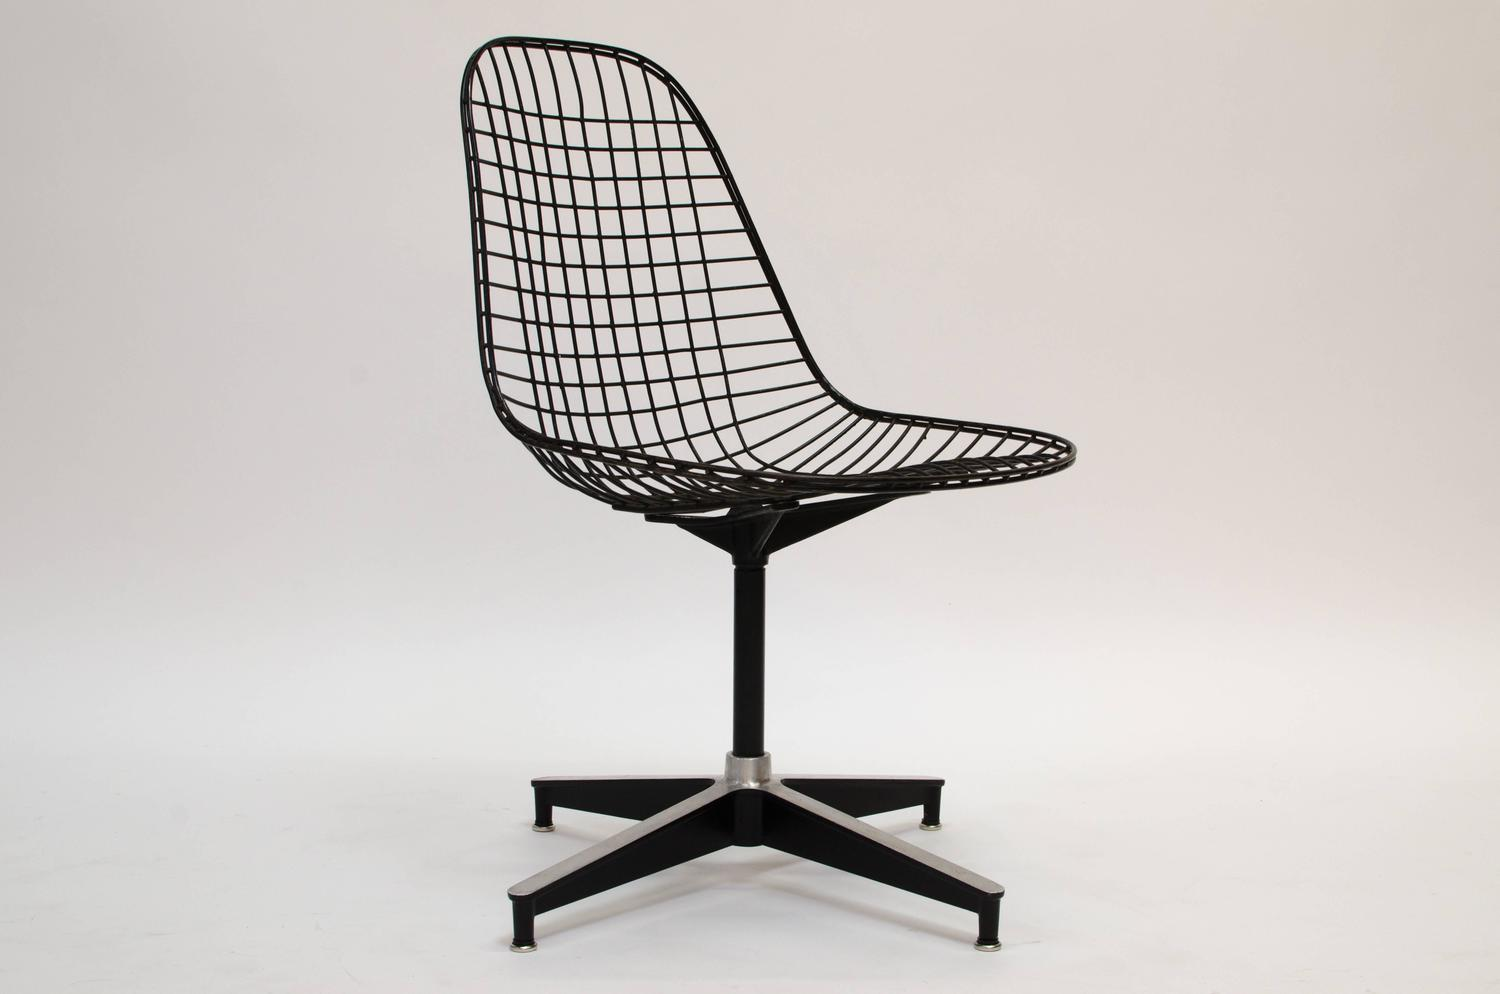 eames pkc wire chair herman miller 1955 for sale at 1stdibs. Black Bedroom Furniture Sets. Home Design Ideas